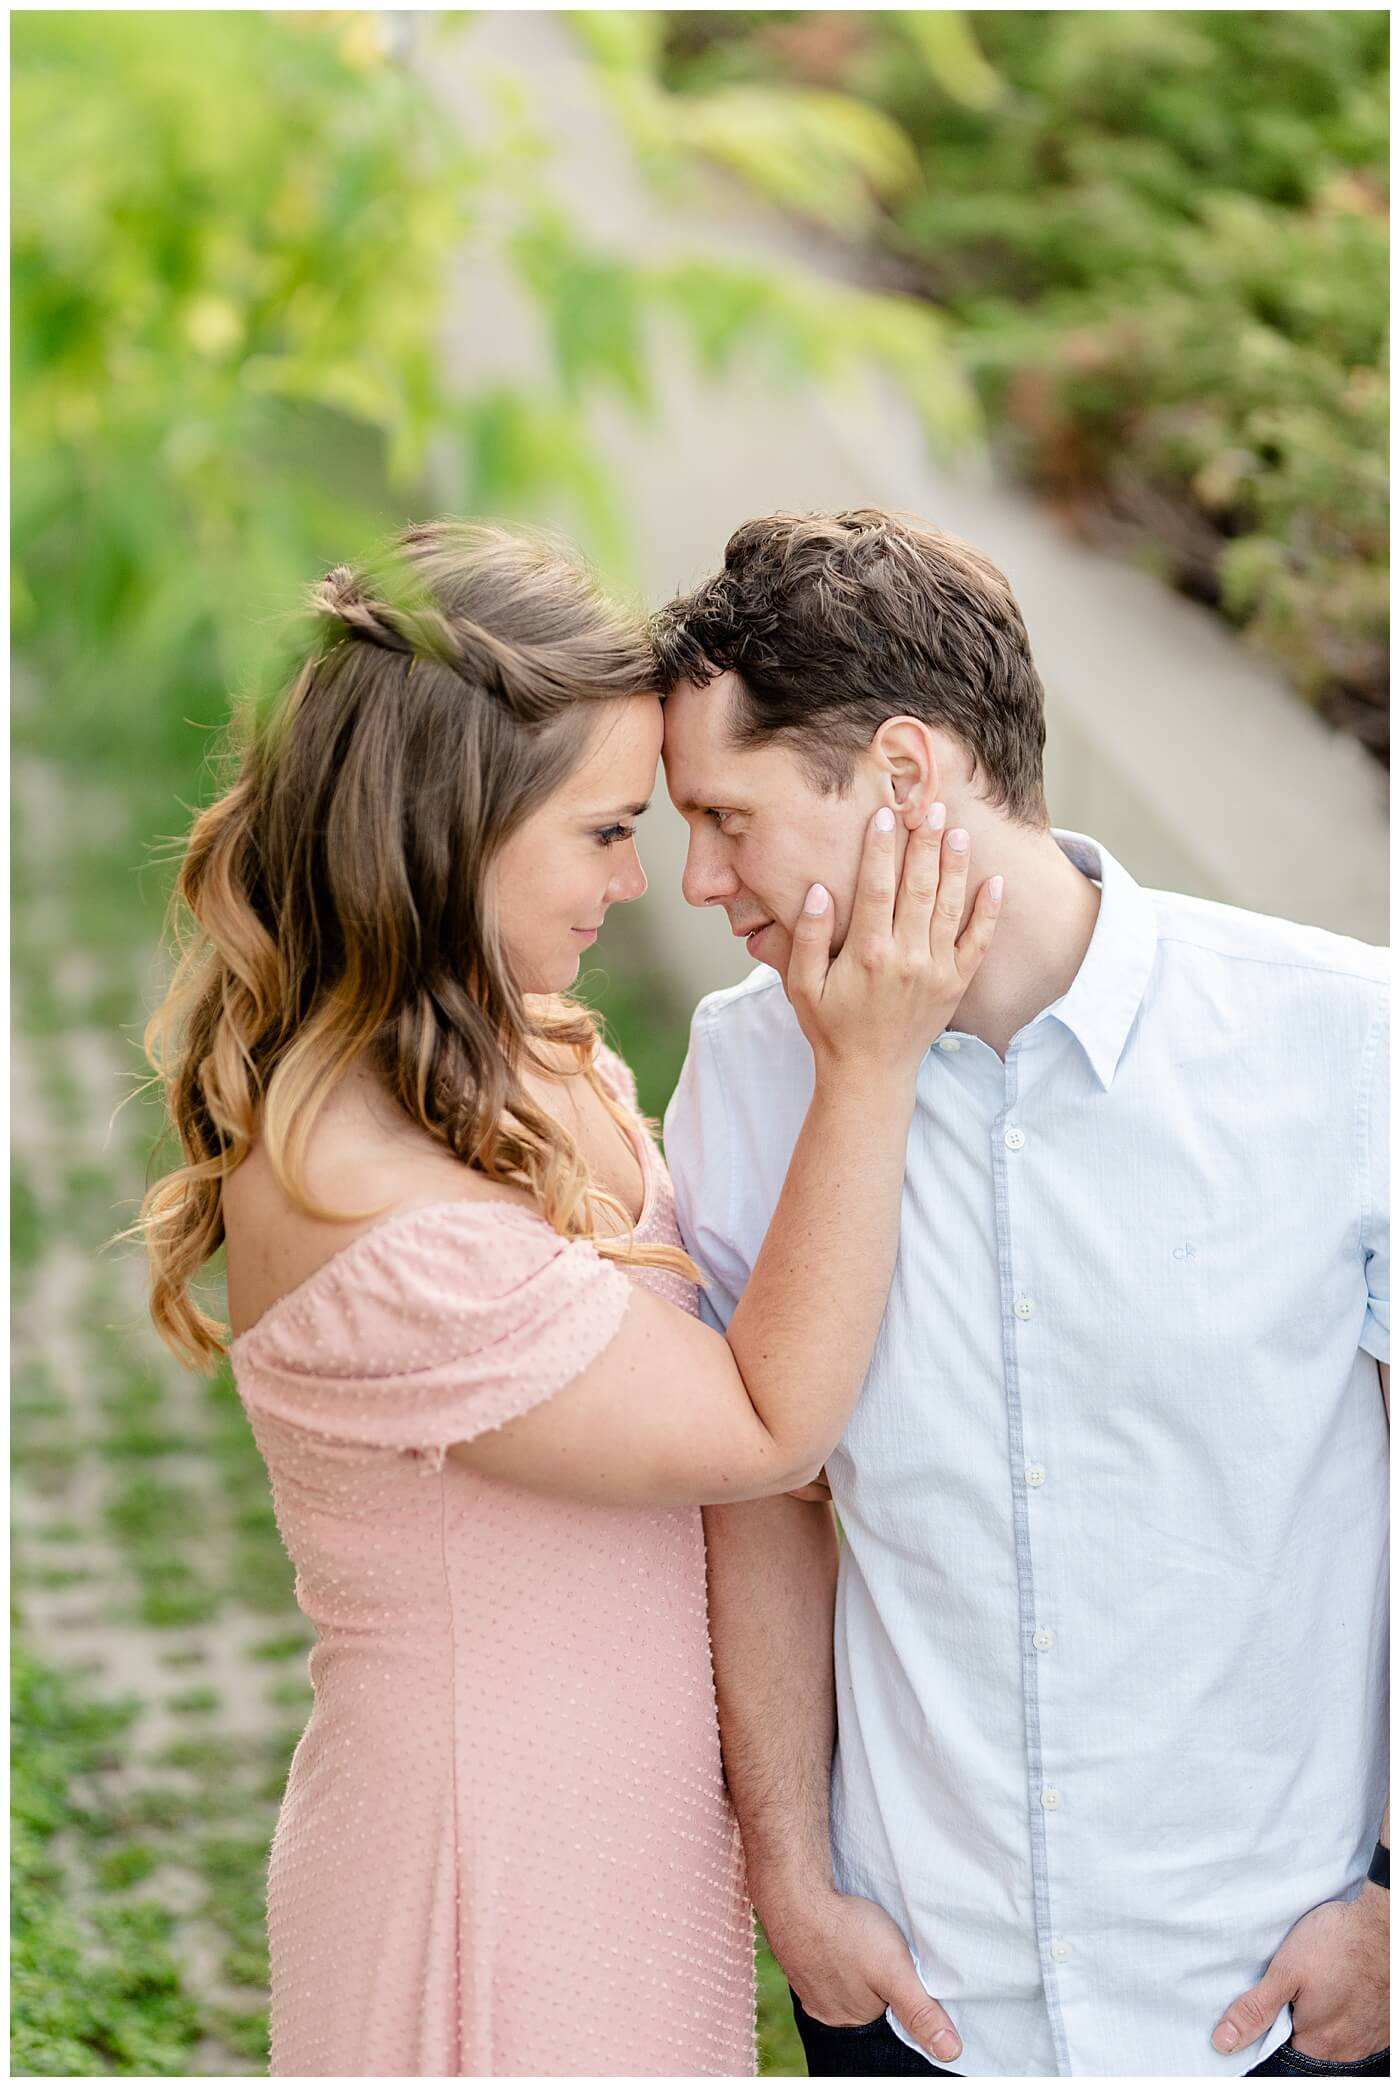 Regina Engagement Photographer - Adam - Sarah - Natural Light Engagement Session in Wascana Park - CBC Regina Building - Pulling in her future husband for a kiss